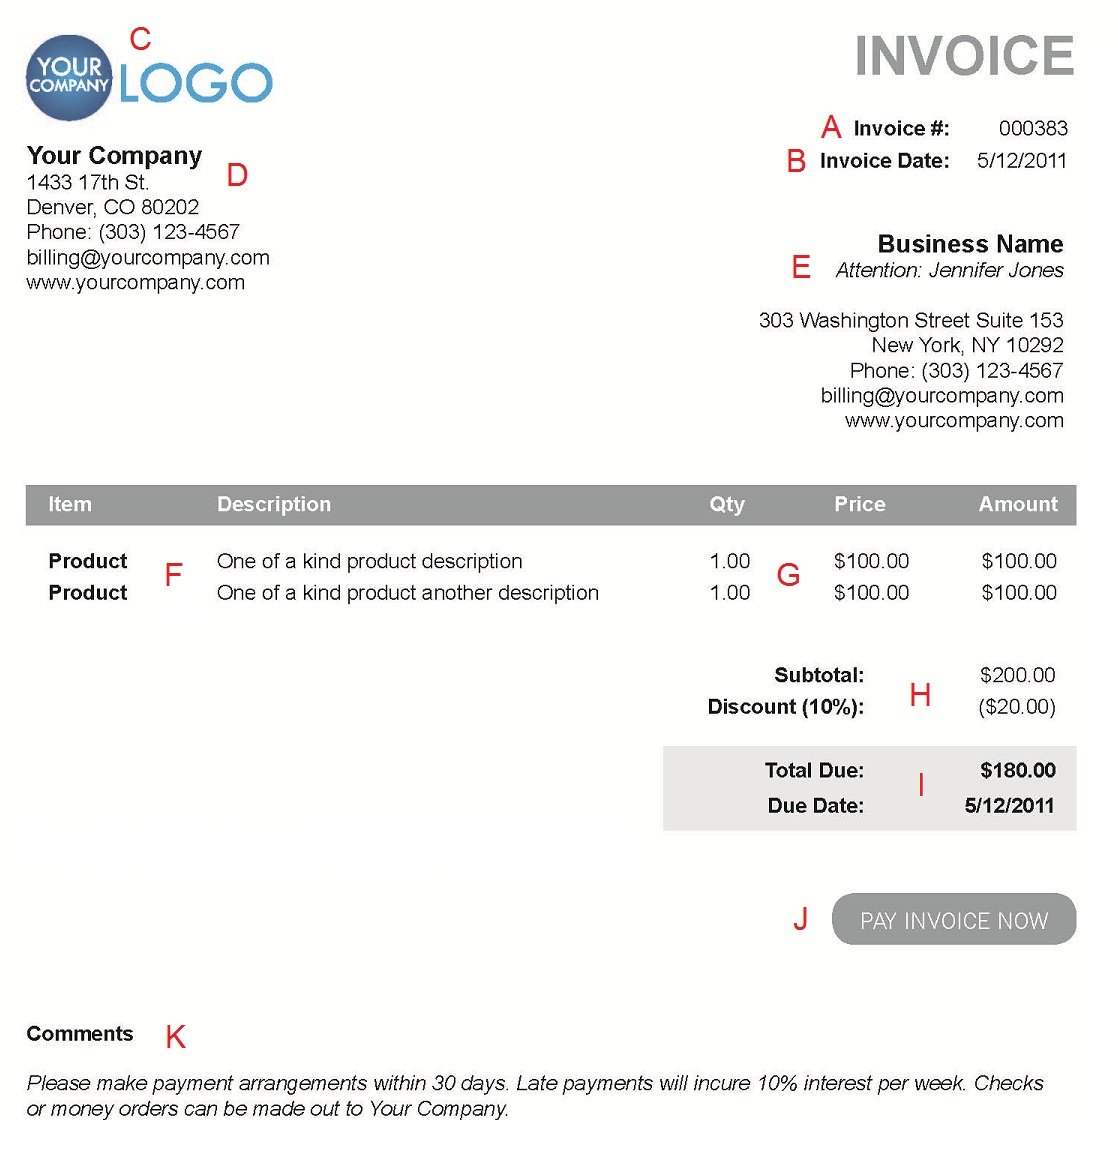 Atvingus  Terrific The  Different Sections Of An Electronic Payment Invoice With Fetching A  With Easy On The Eye Rent Receipt Template Free Also Receipt Pads In Addition Free Auto Repair Receipt Templates And General Receipt As Well As How To File Receipts Additionally Delta Airline Receipt From Paysimplecom With Atvingus  Fetching The  Different Sections Of An Electronic Payment Invoice With Easy On The Eye A  And Terrific Rent Receipt Template Free Also Receipt Pads In Addition Free Auto Repair Receipt Templates From Paysimplecom